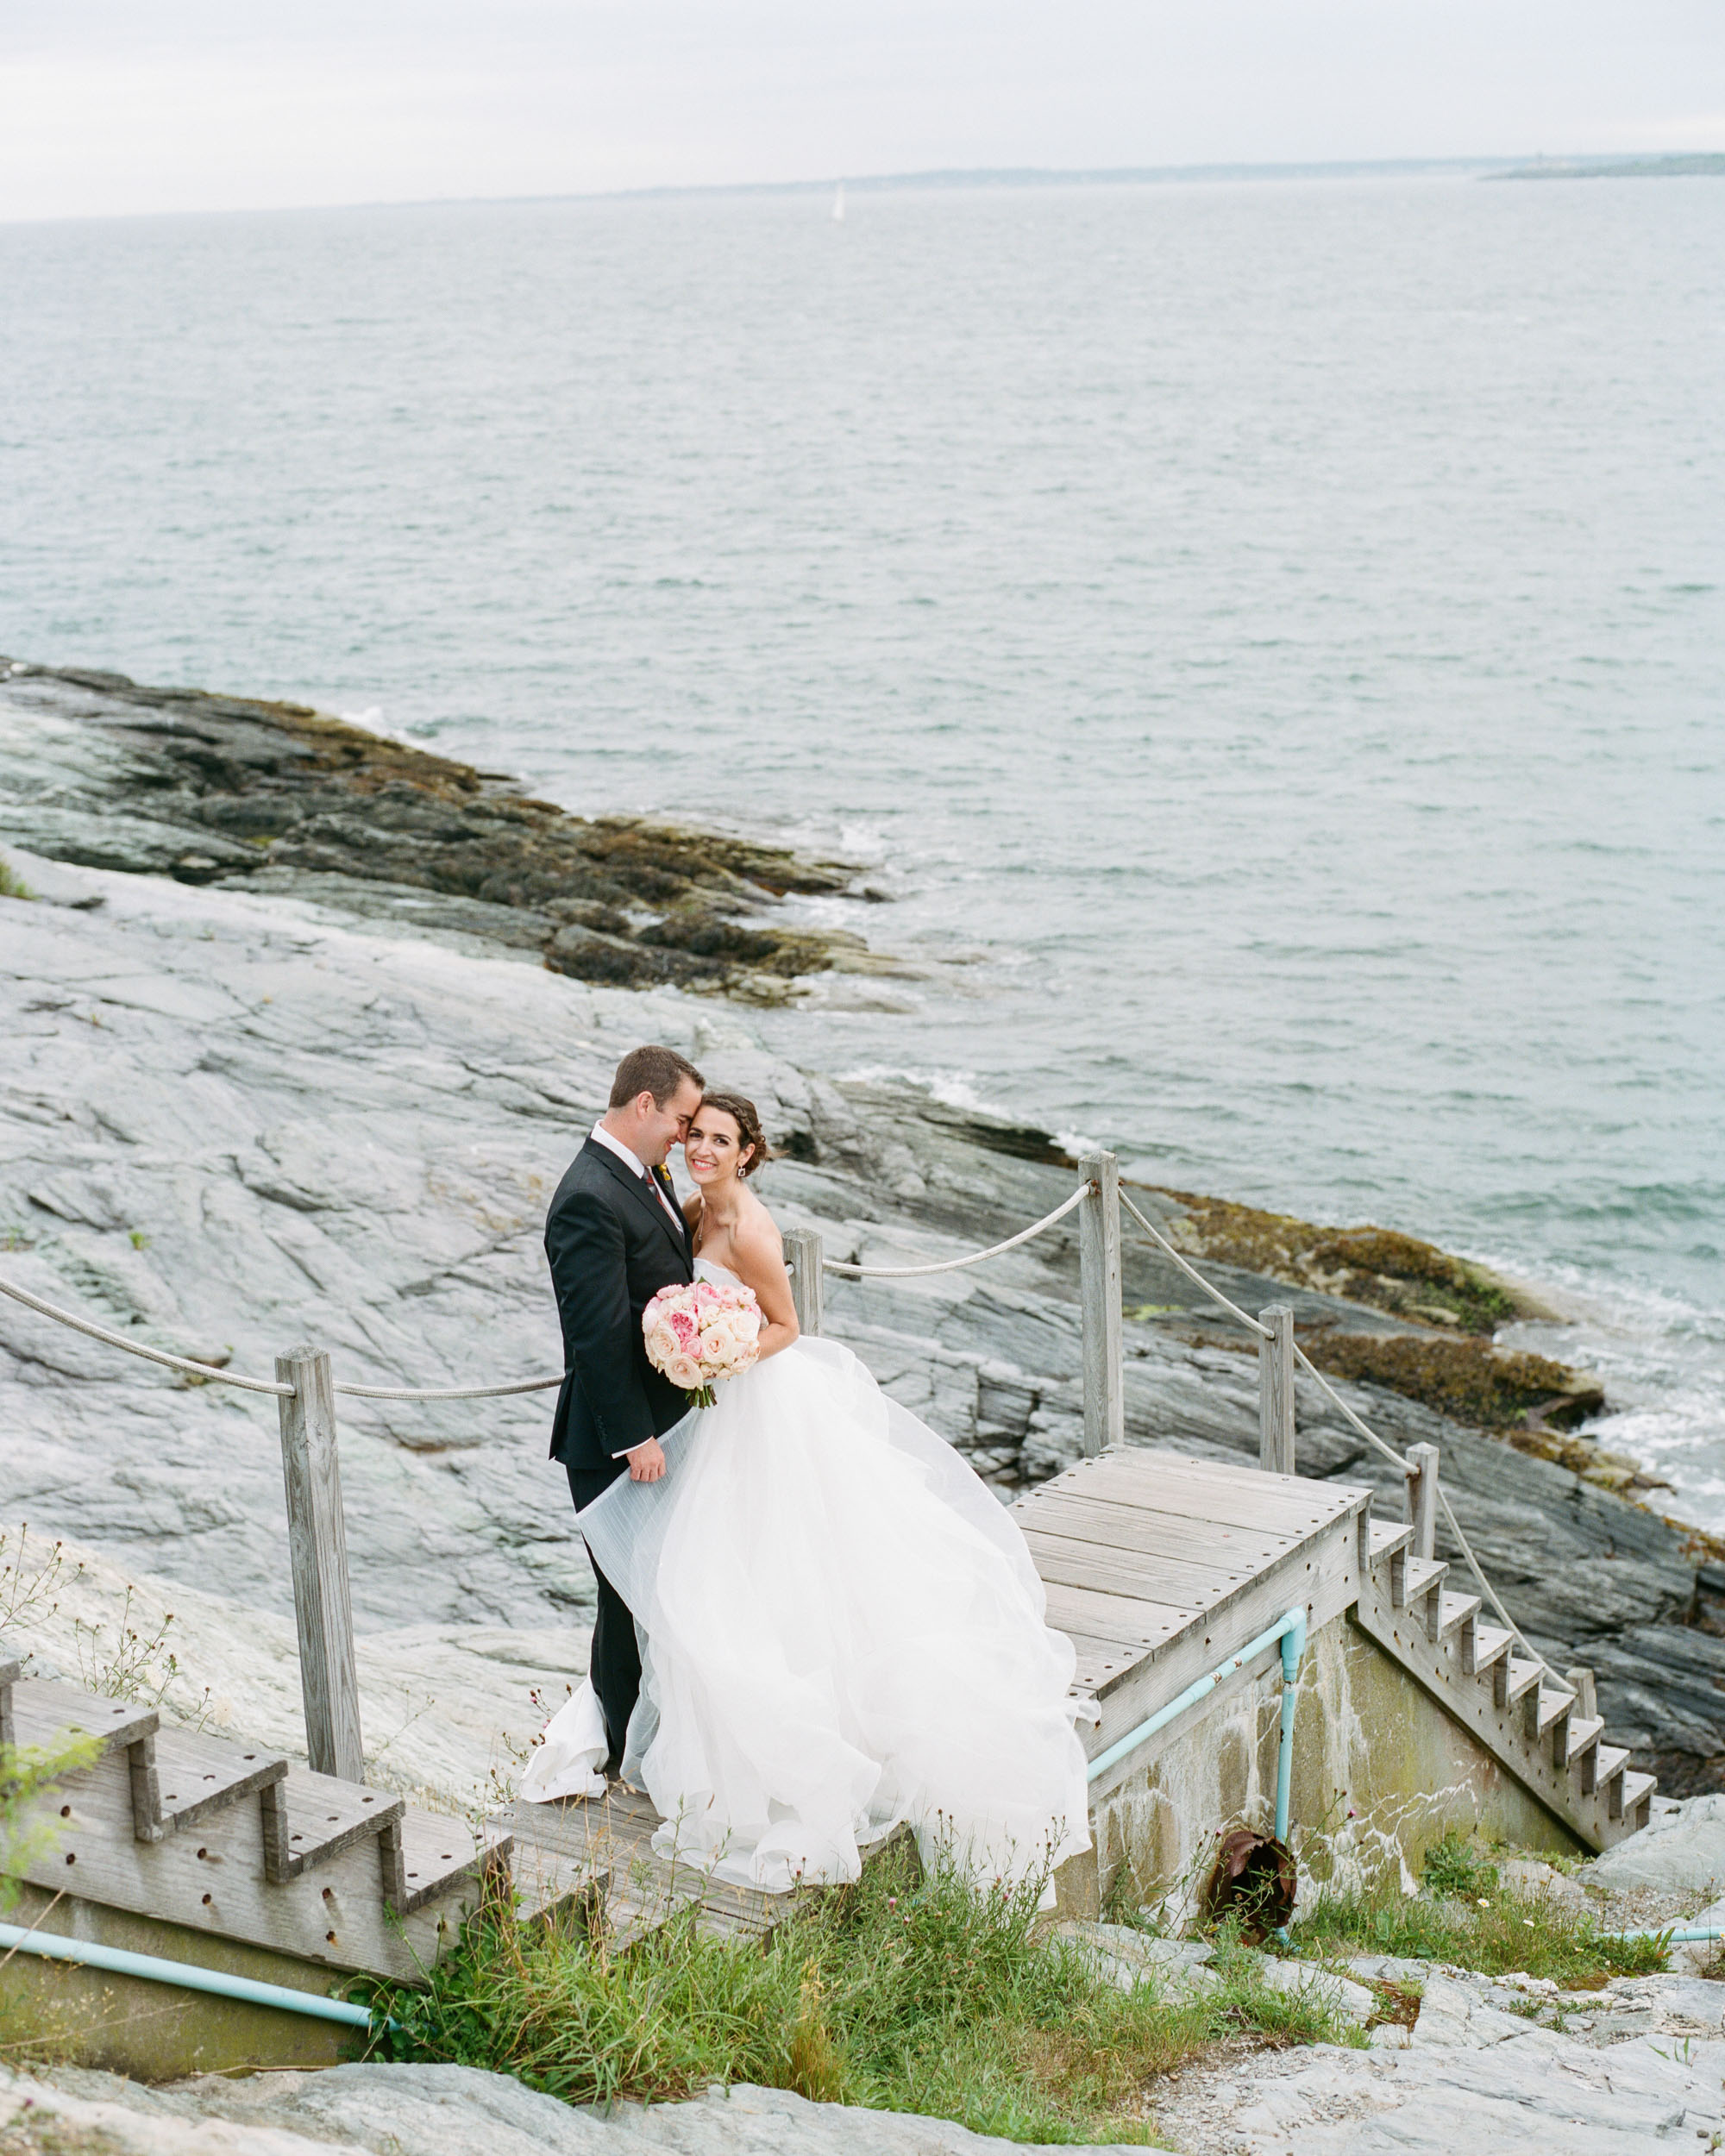 Castle Hill Inn Newport Wedding Photographer 11 - Castle Hill Inn